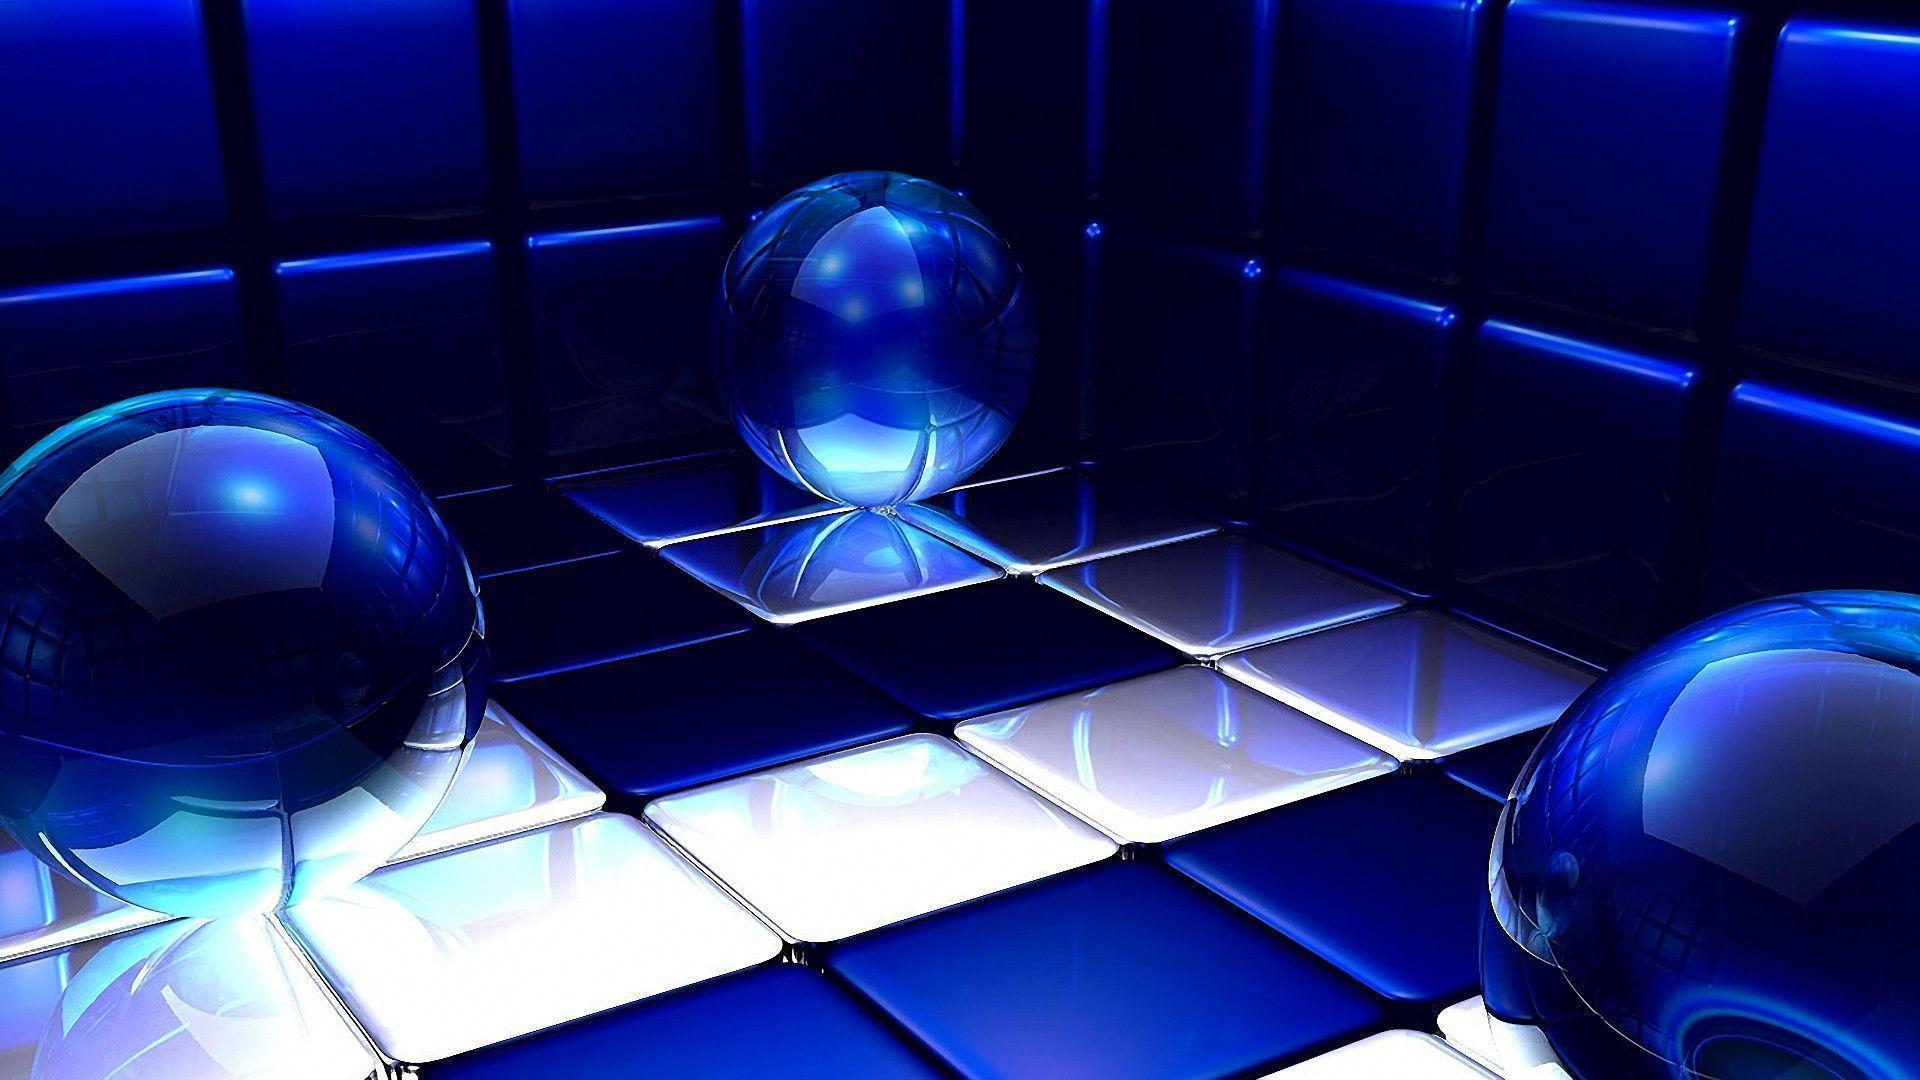 3D Cube Art Wallpapers 1080p